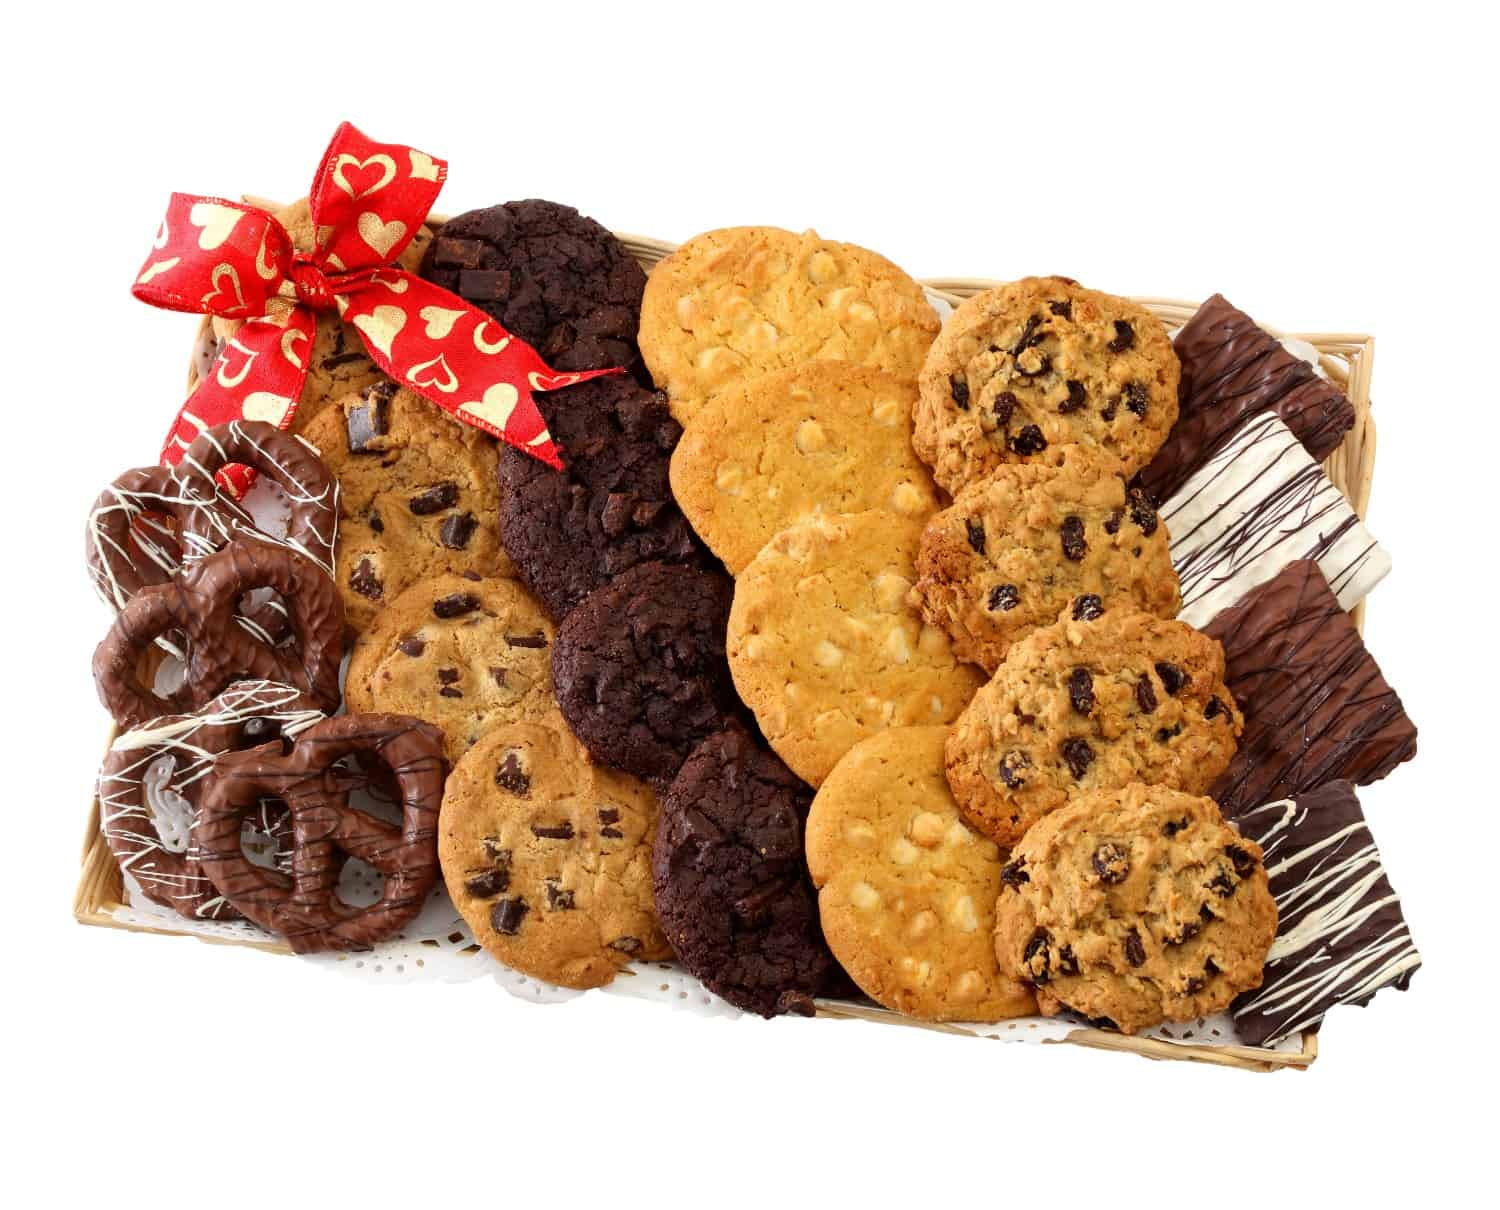 Gourmet Cookies & Chocolate Valentines Day Gift